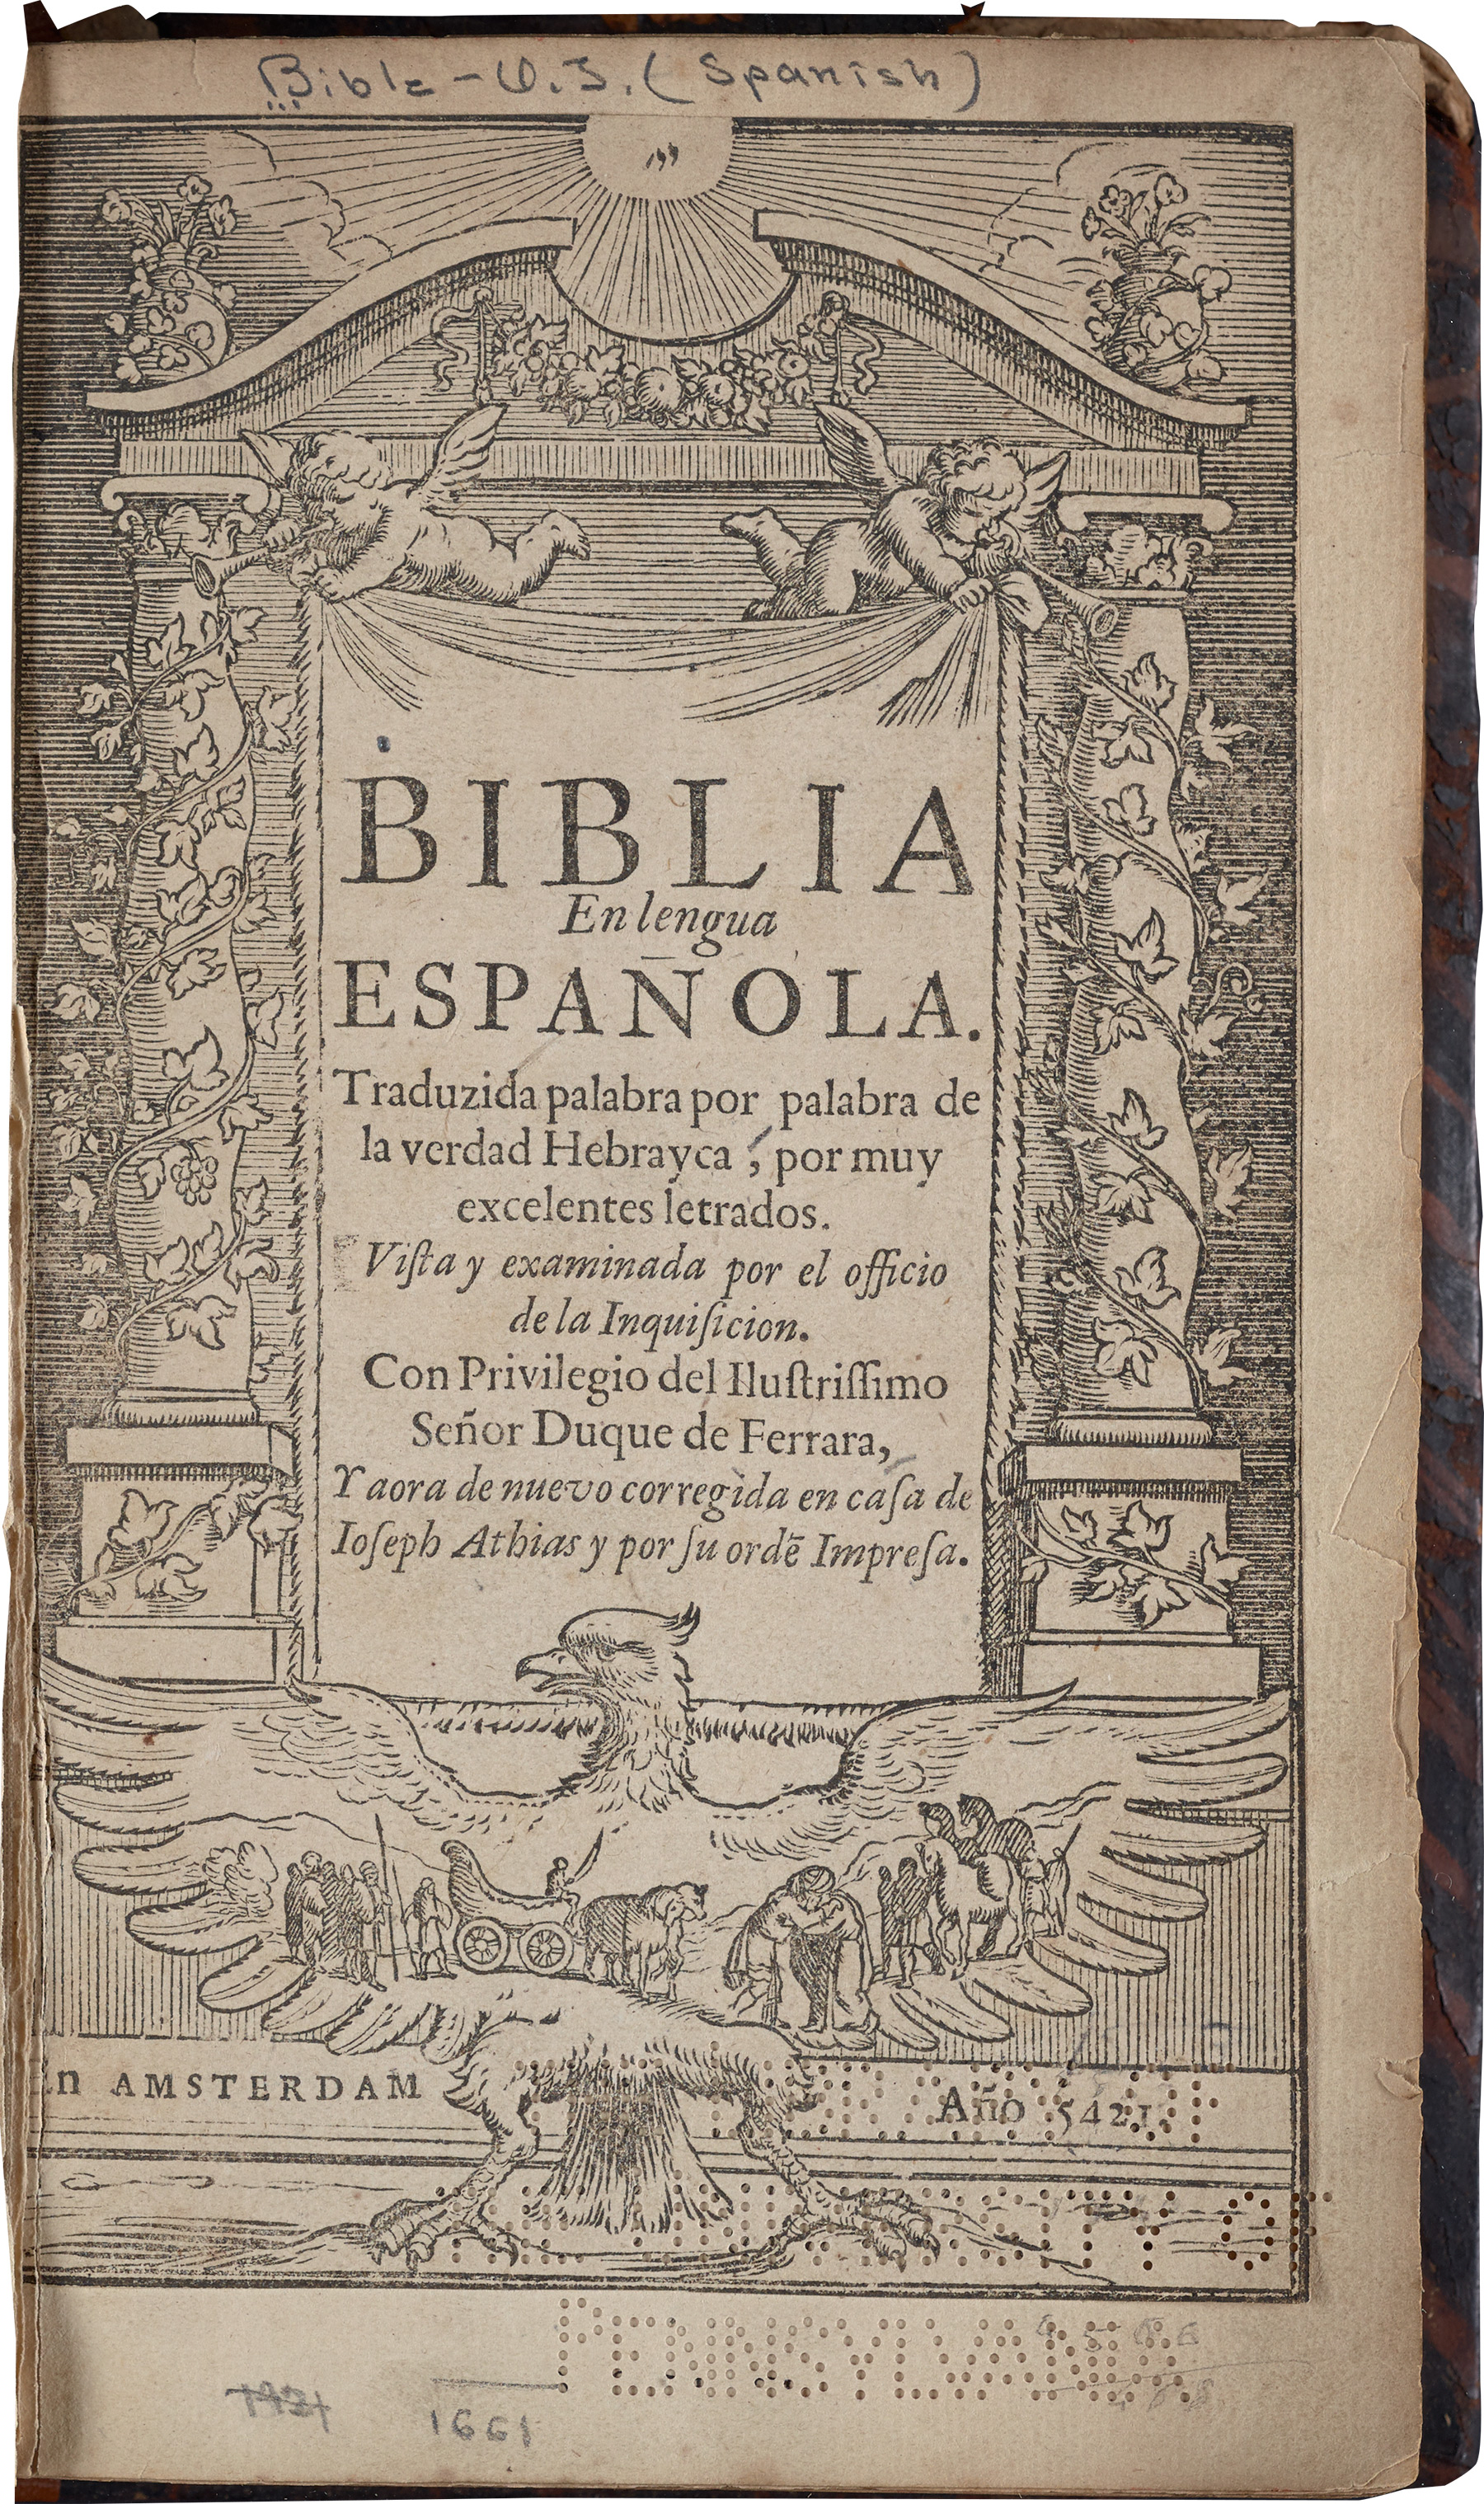 Title page of the 1661 edition